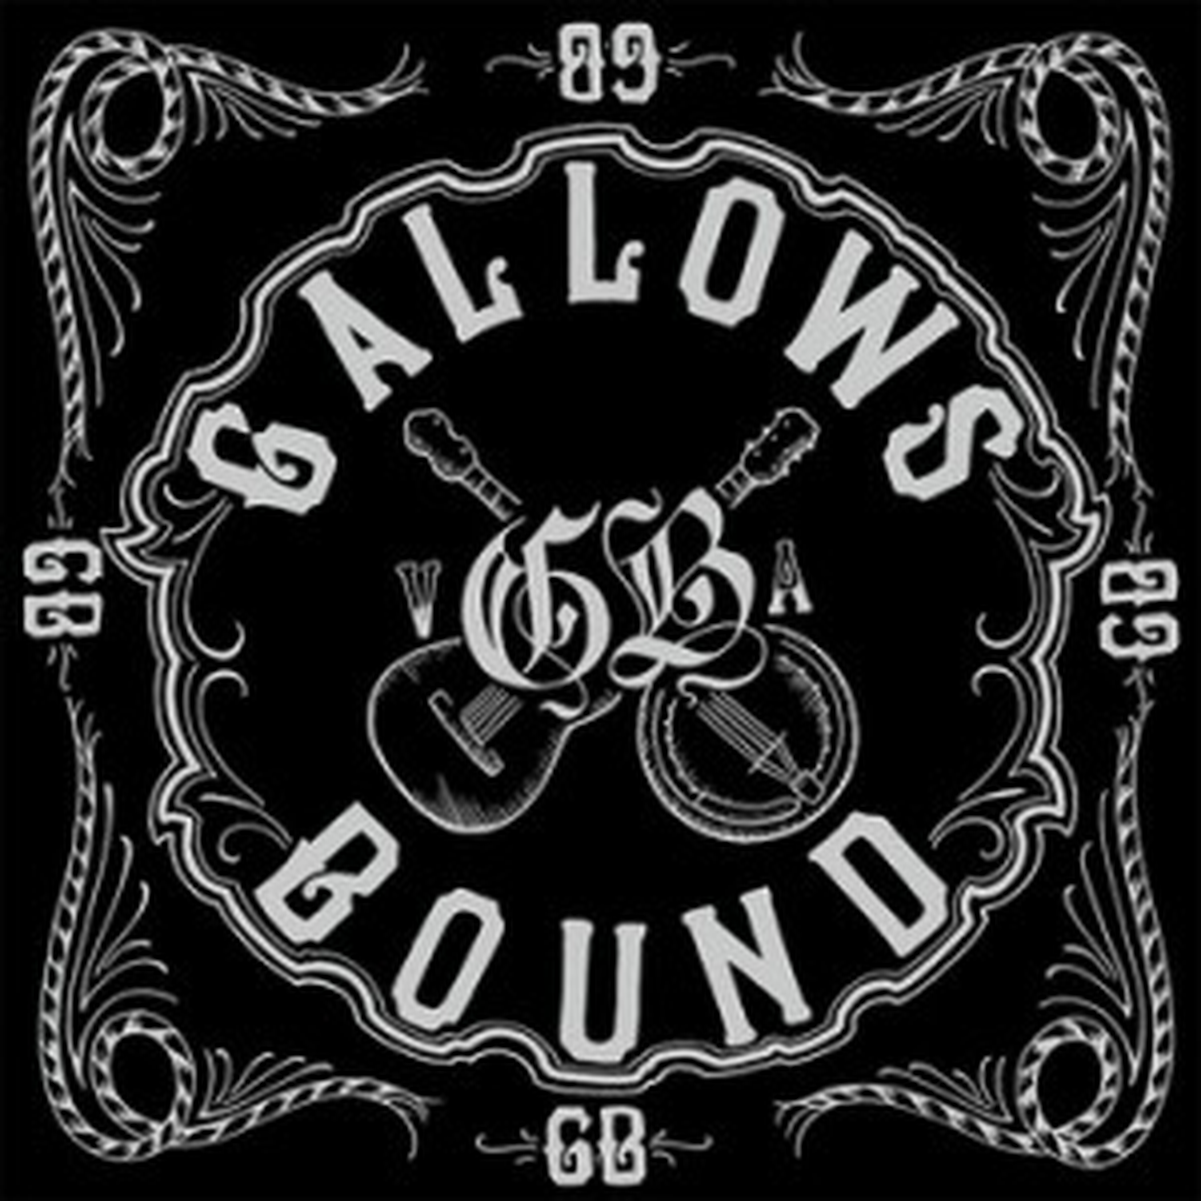 Gallows Bound wiki, Gallows Bound review, Gallows Bound history, Gallows Bound news